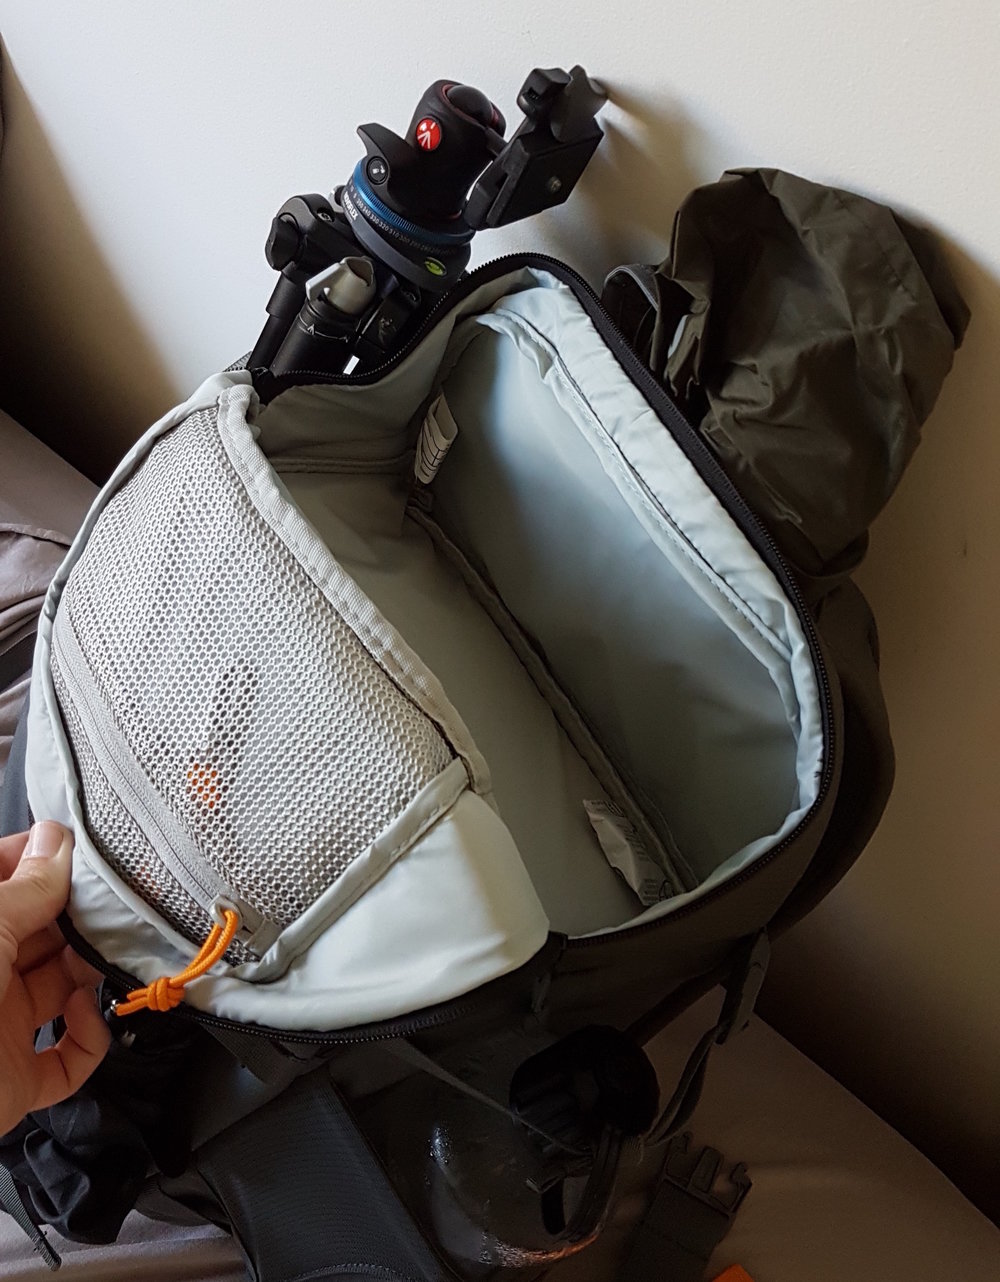 LowePro Flipside Trek 450 AW, Accessories Pouch, Hiking, Camera Backpack, Gear, Manfrotto Befree Tripod, Water Bottle, Trekking, Travel, MacBook Retina.jpg